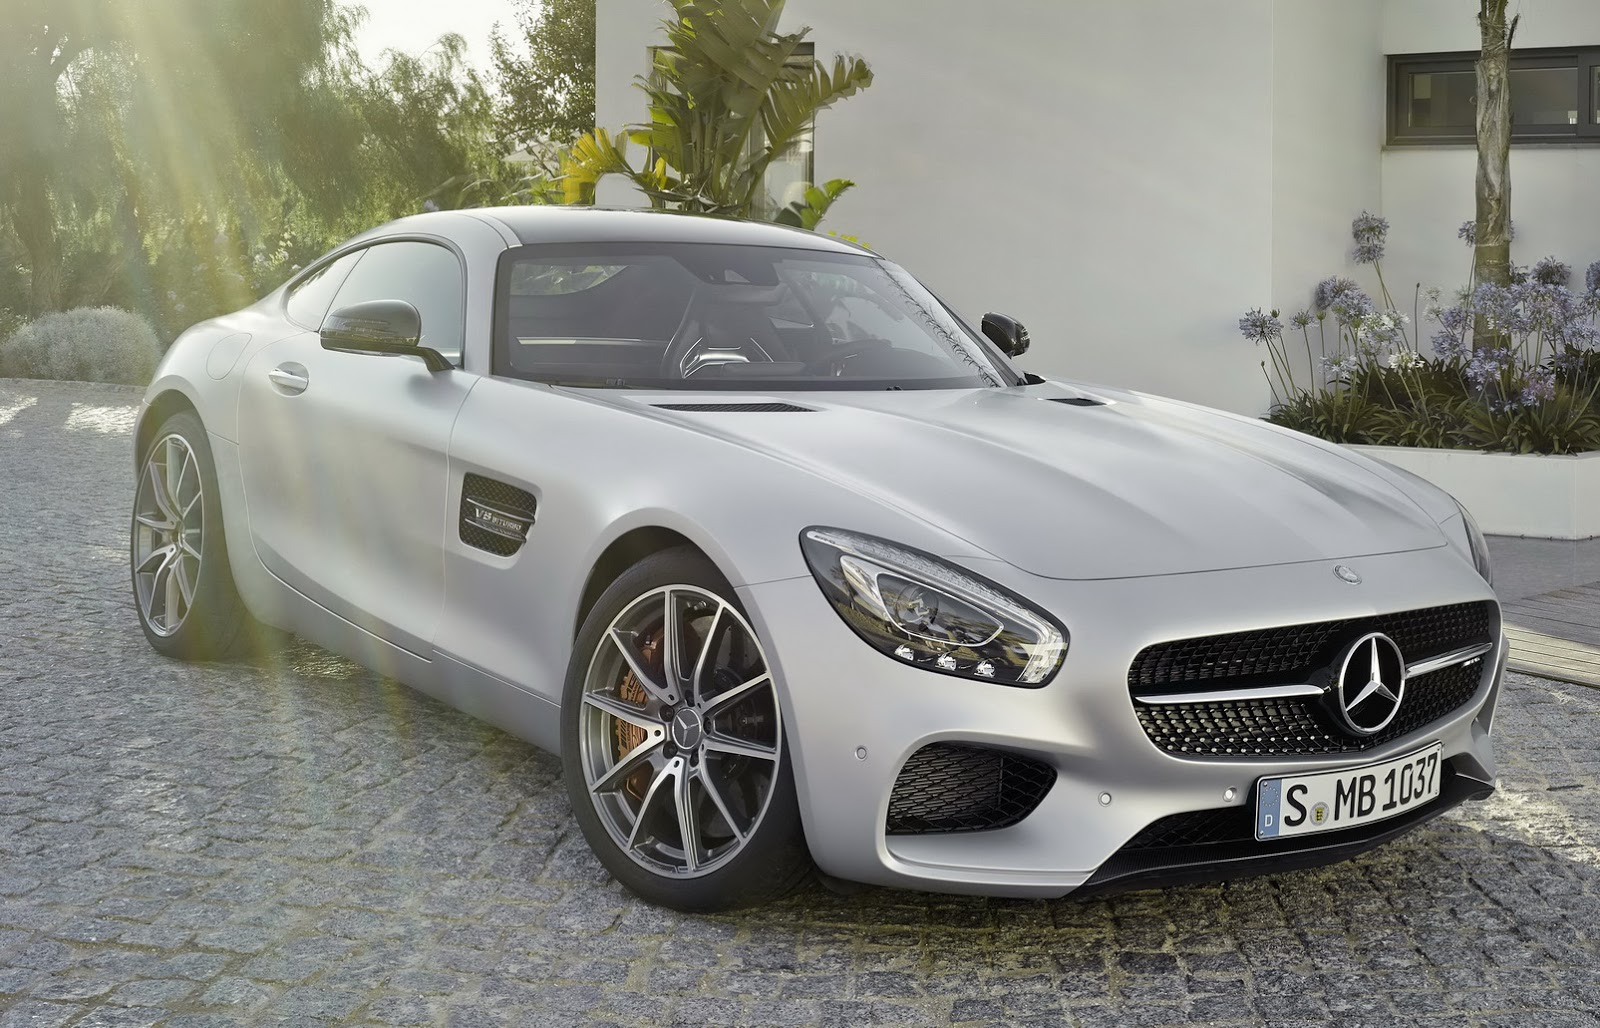 http://www.ultimatecarnegotiators.com/wp-content/uploads/2016/02/AMG-GT-Coupe-5.jpg